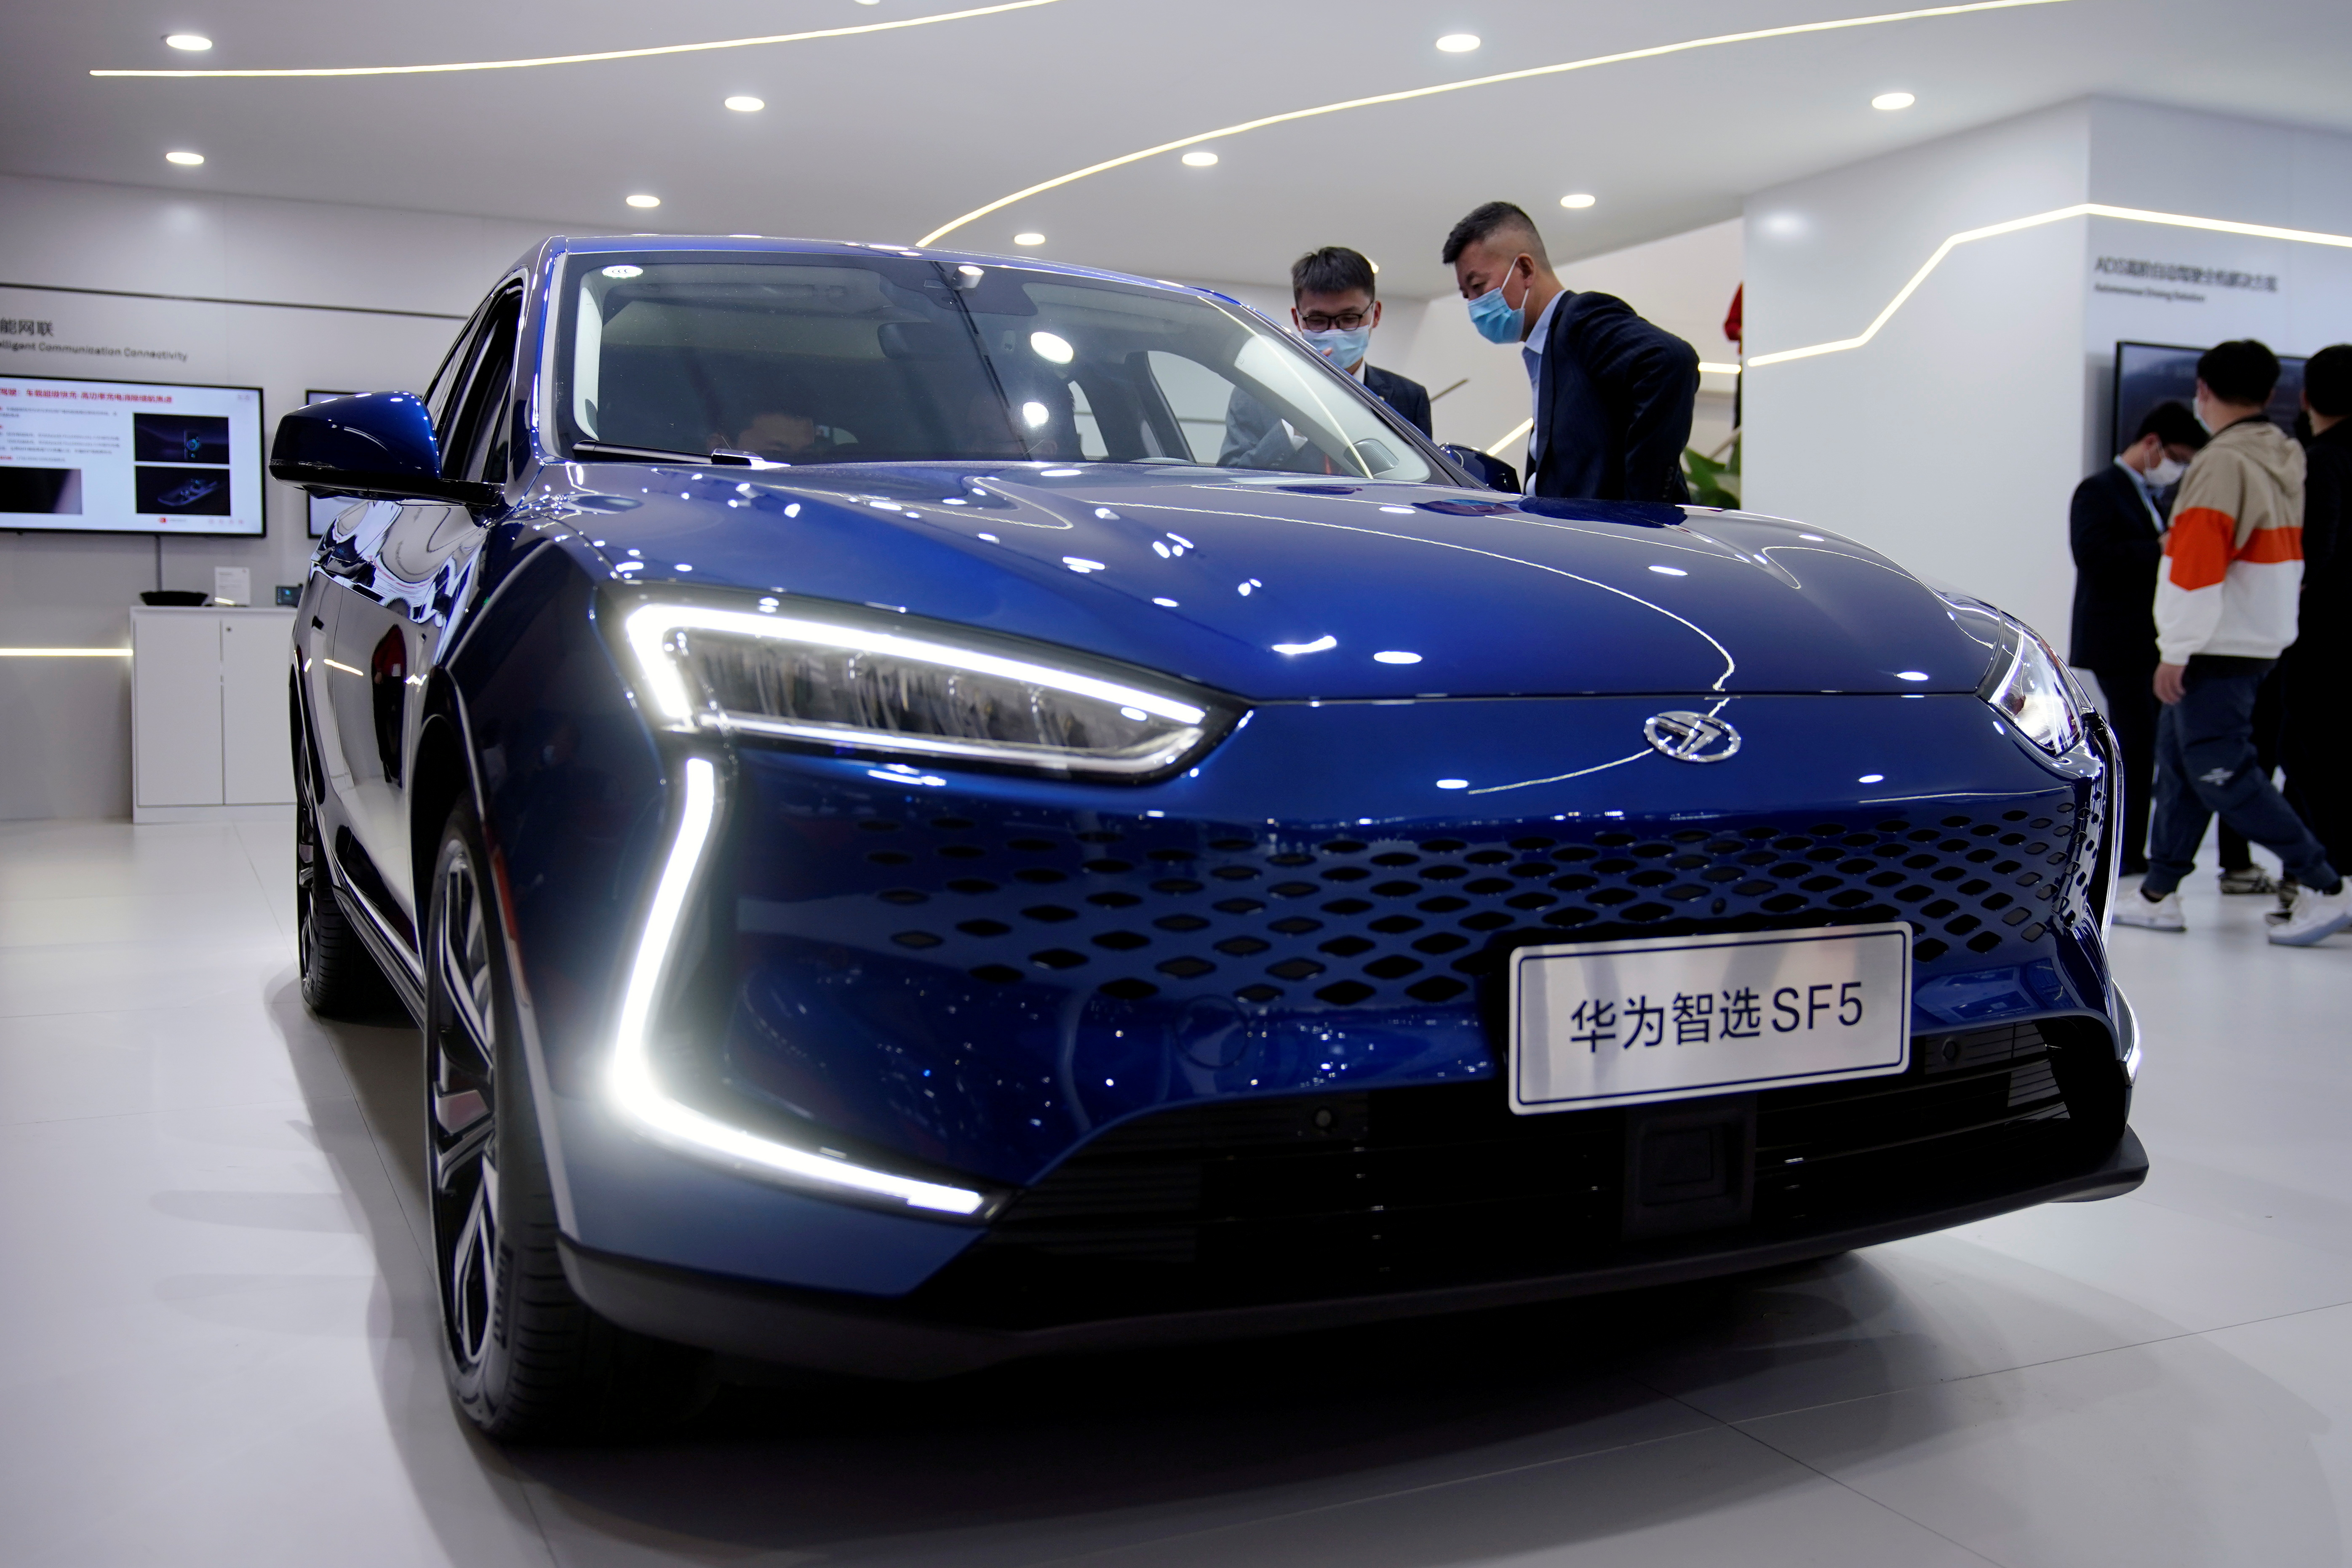 People check a Seres Huawei Smart Selection SF5 electric vehicle (EV) displayed during the Auto Shanghai show in Shanghai, China April 19, 2021. REUTERS/Aly Song